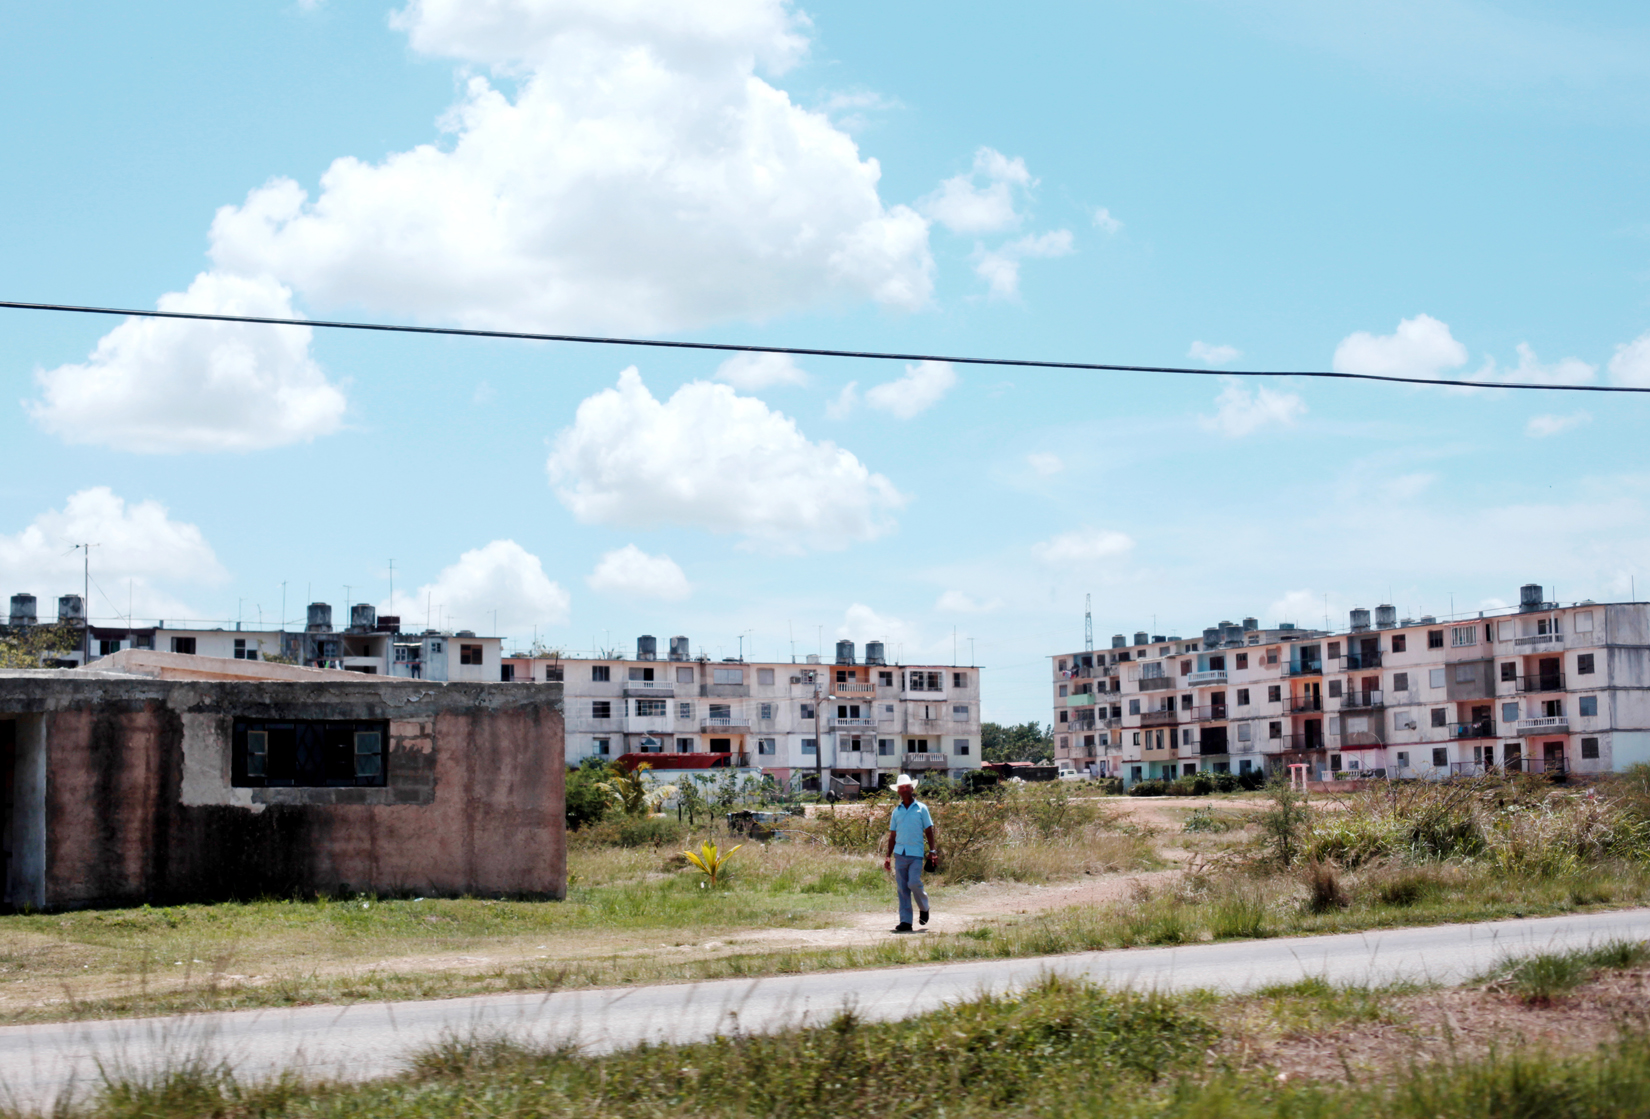 Apartment blocks with a crumbling infrastructure are seen in the provinces on the way to the port city of Mariel, Cuba, on April 19, 2015. Statistics label 7 out of every 10 Cuban houses in need of major repairs, with the province surrounding the capital requiring approximately 300,000 more inhabitable properties.Mariel's tranquil appearance belies its important place in both the history and future of Cuban-American interaction. It is where Russians unloaded nuclear warheads in the 1962 Cuban missile crisis, and the gateway through which 125,000 Miami-bound emigres fled during the Mariel Boatlift of 1980. The town is now the site of construction of a deepwater container port and a free-trade zone, a critical ingredient for which will be the future of the U.S. embargo against Cuba, in place for more than 50 years but now under speculation of being lifted.